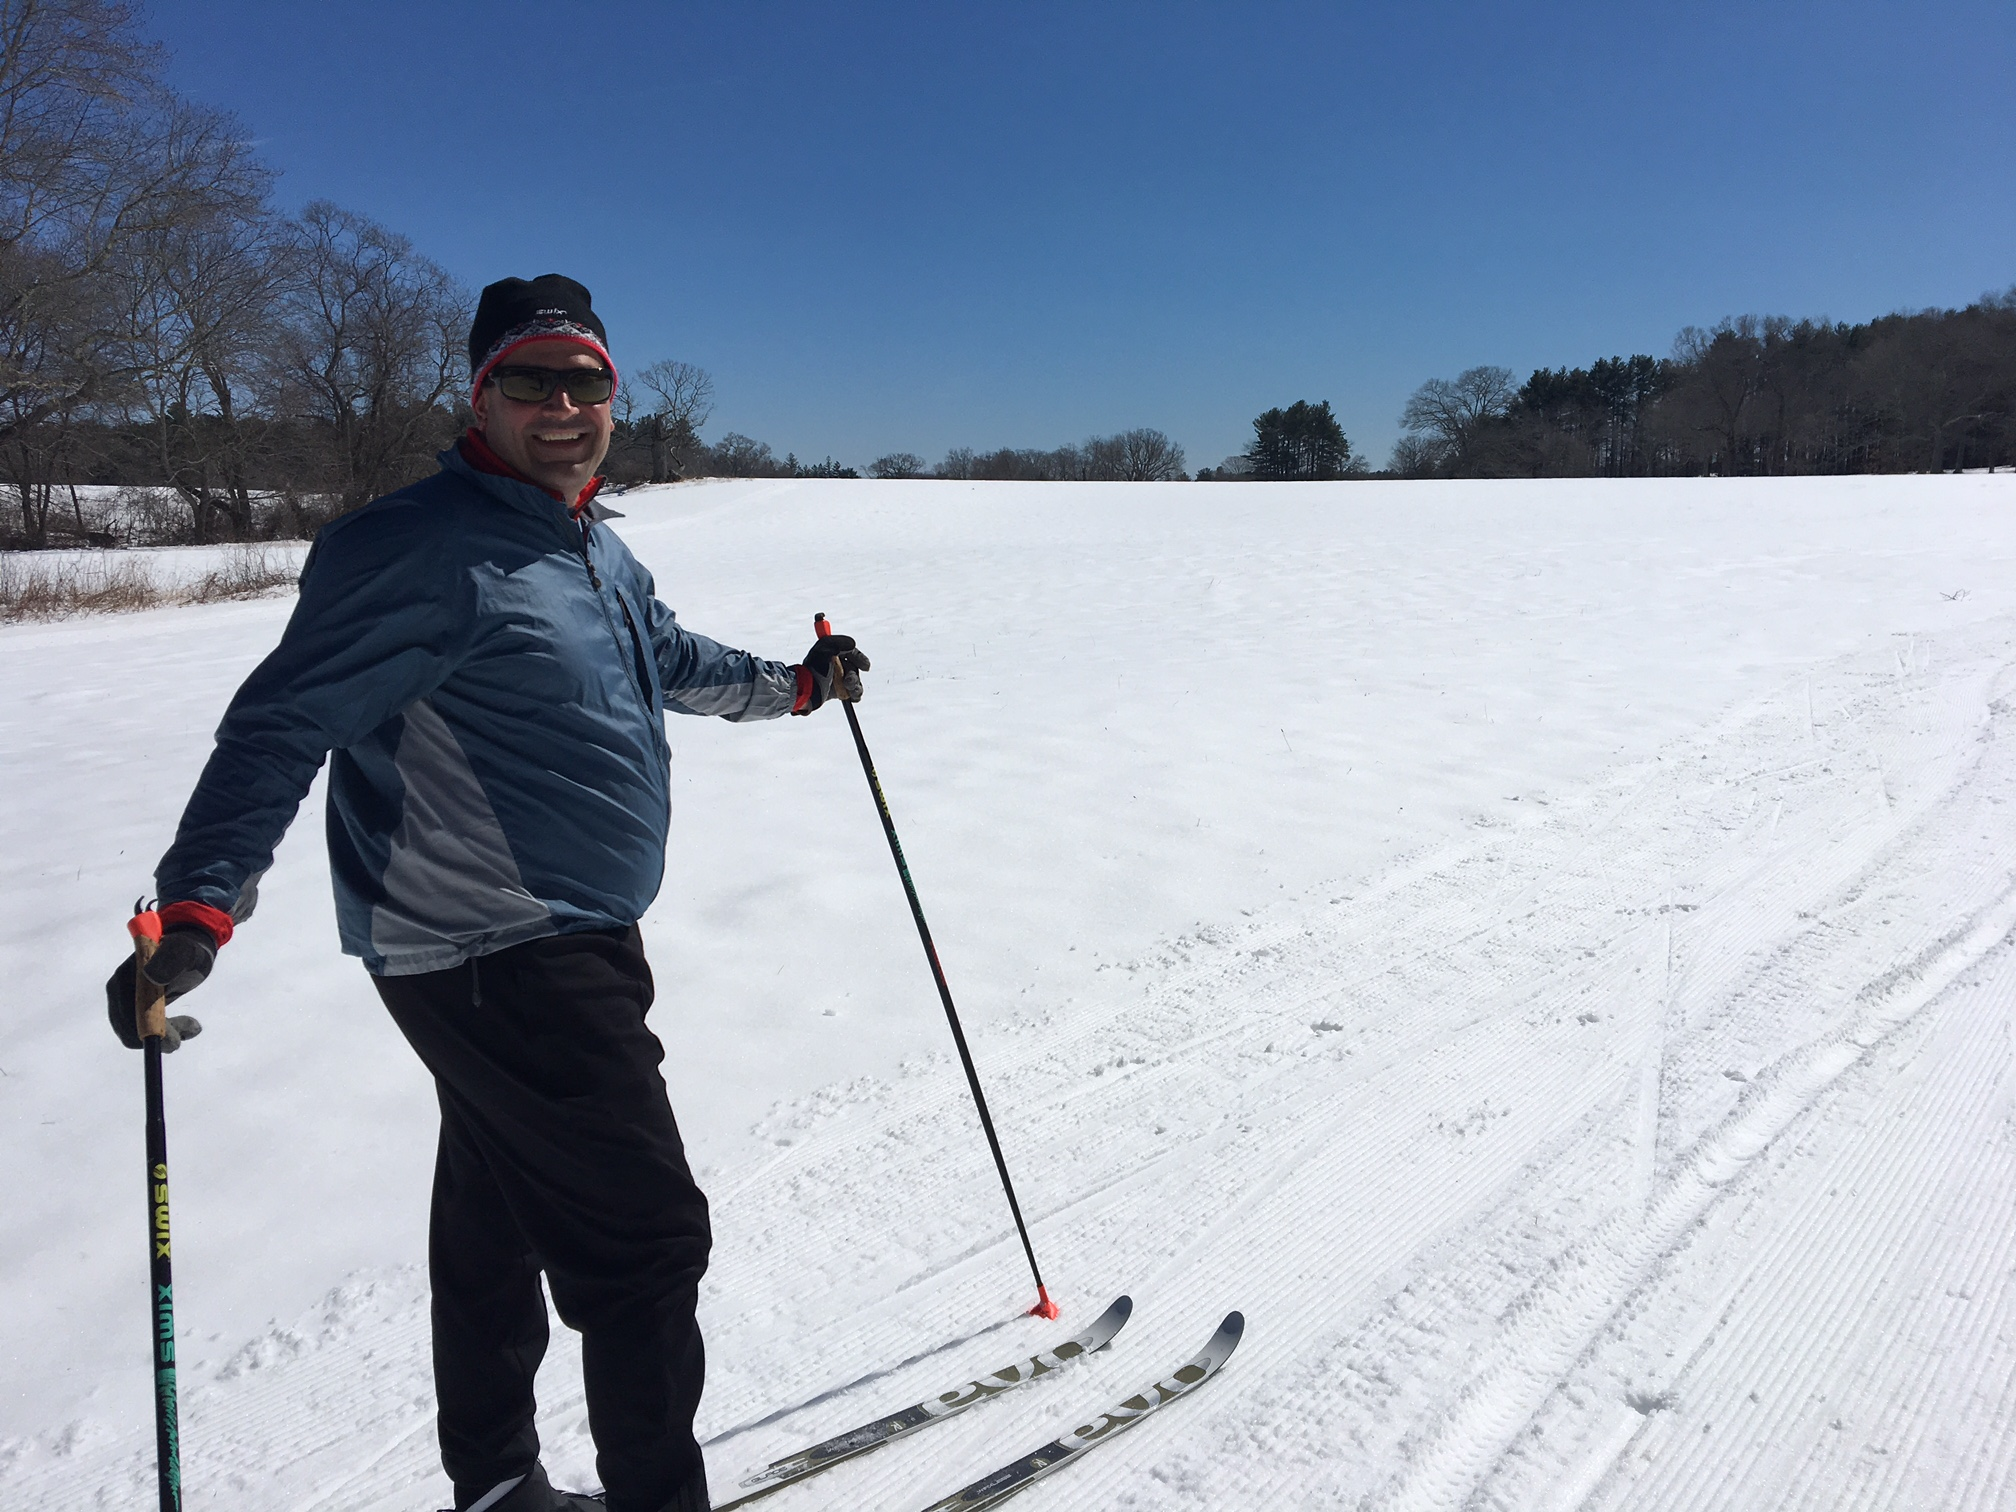 Jamie Braman from Watertown enjoyed his first time classic skiing at Appleton today